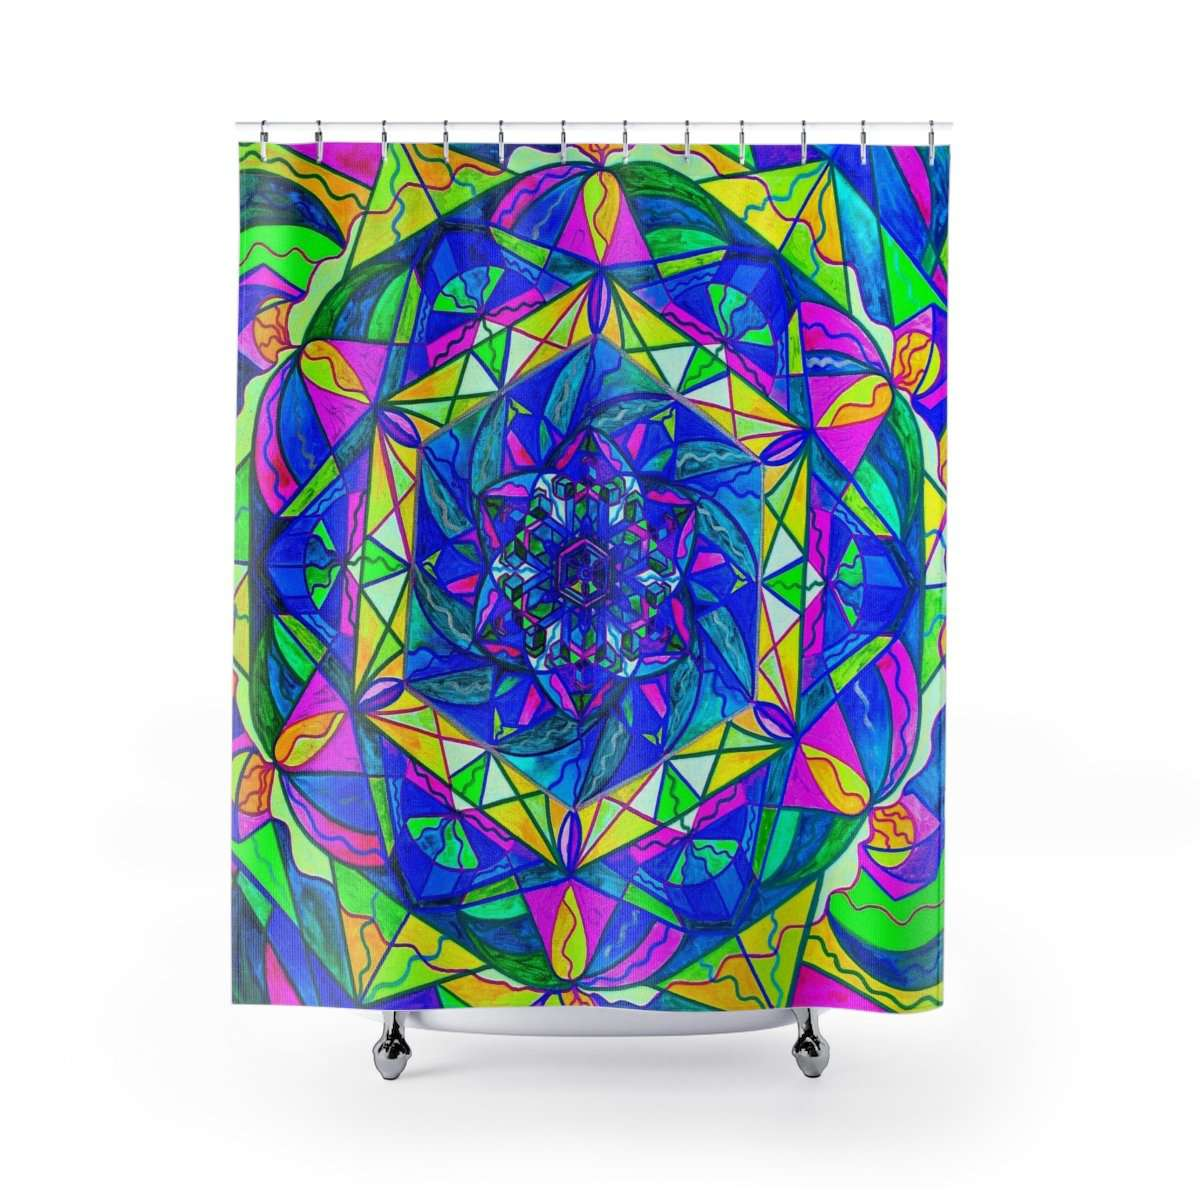 Positive Focus - Shower Curtains